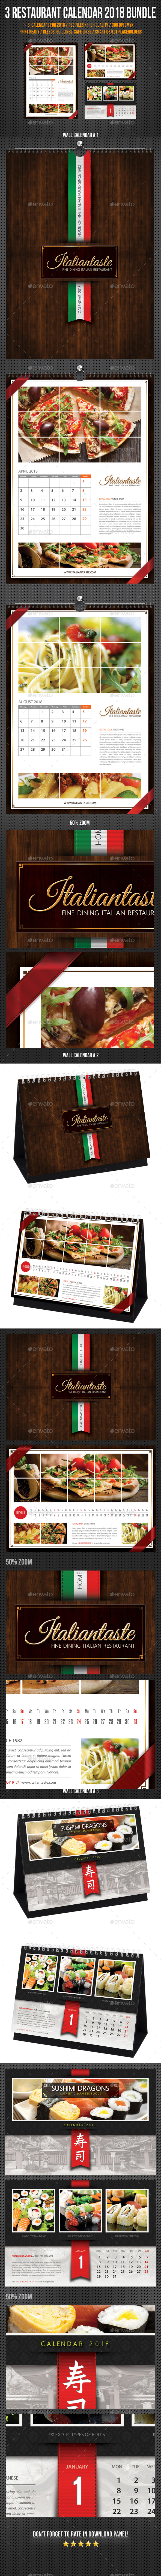 3 in 1 Restaurant Calendar 2018 Bundle